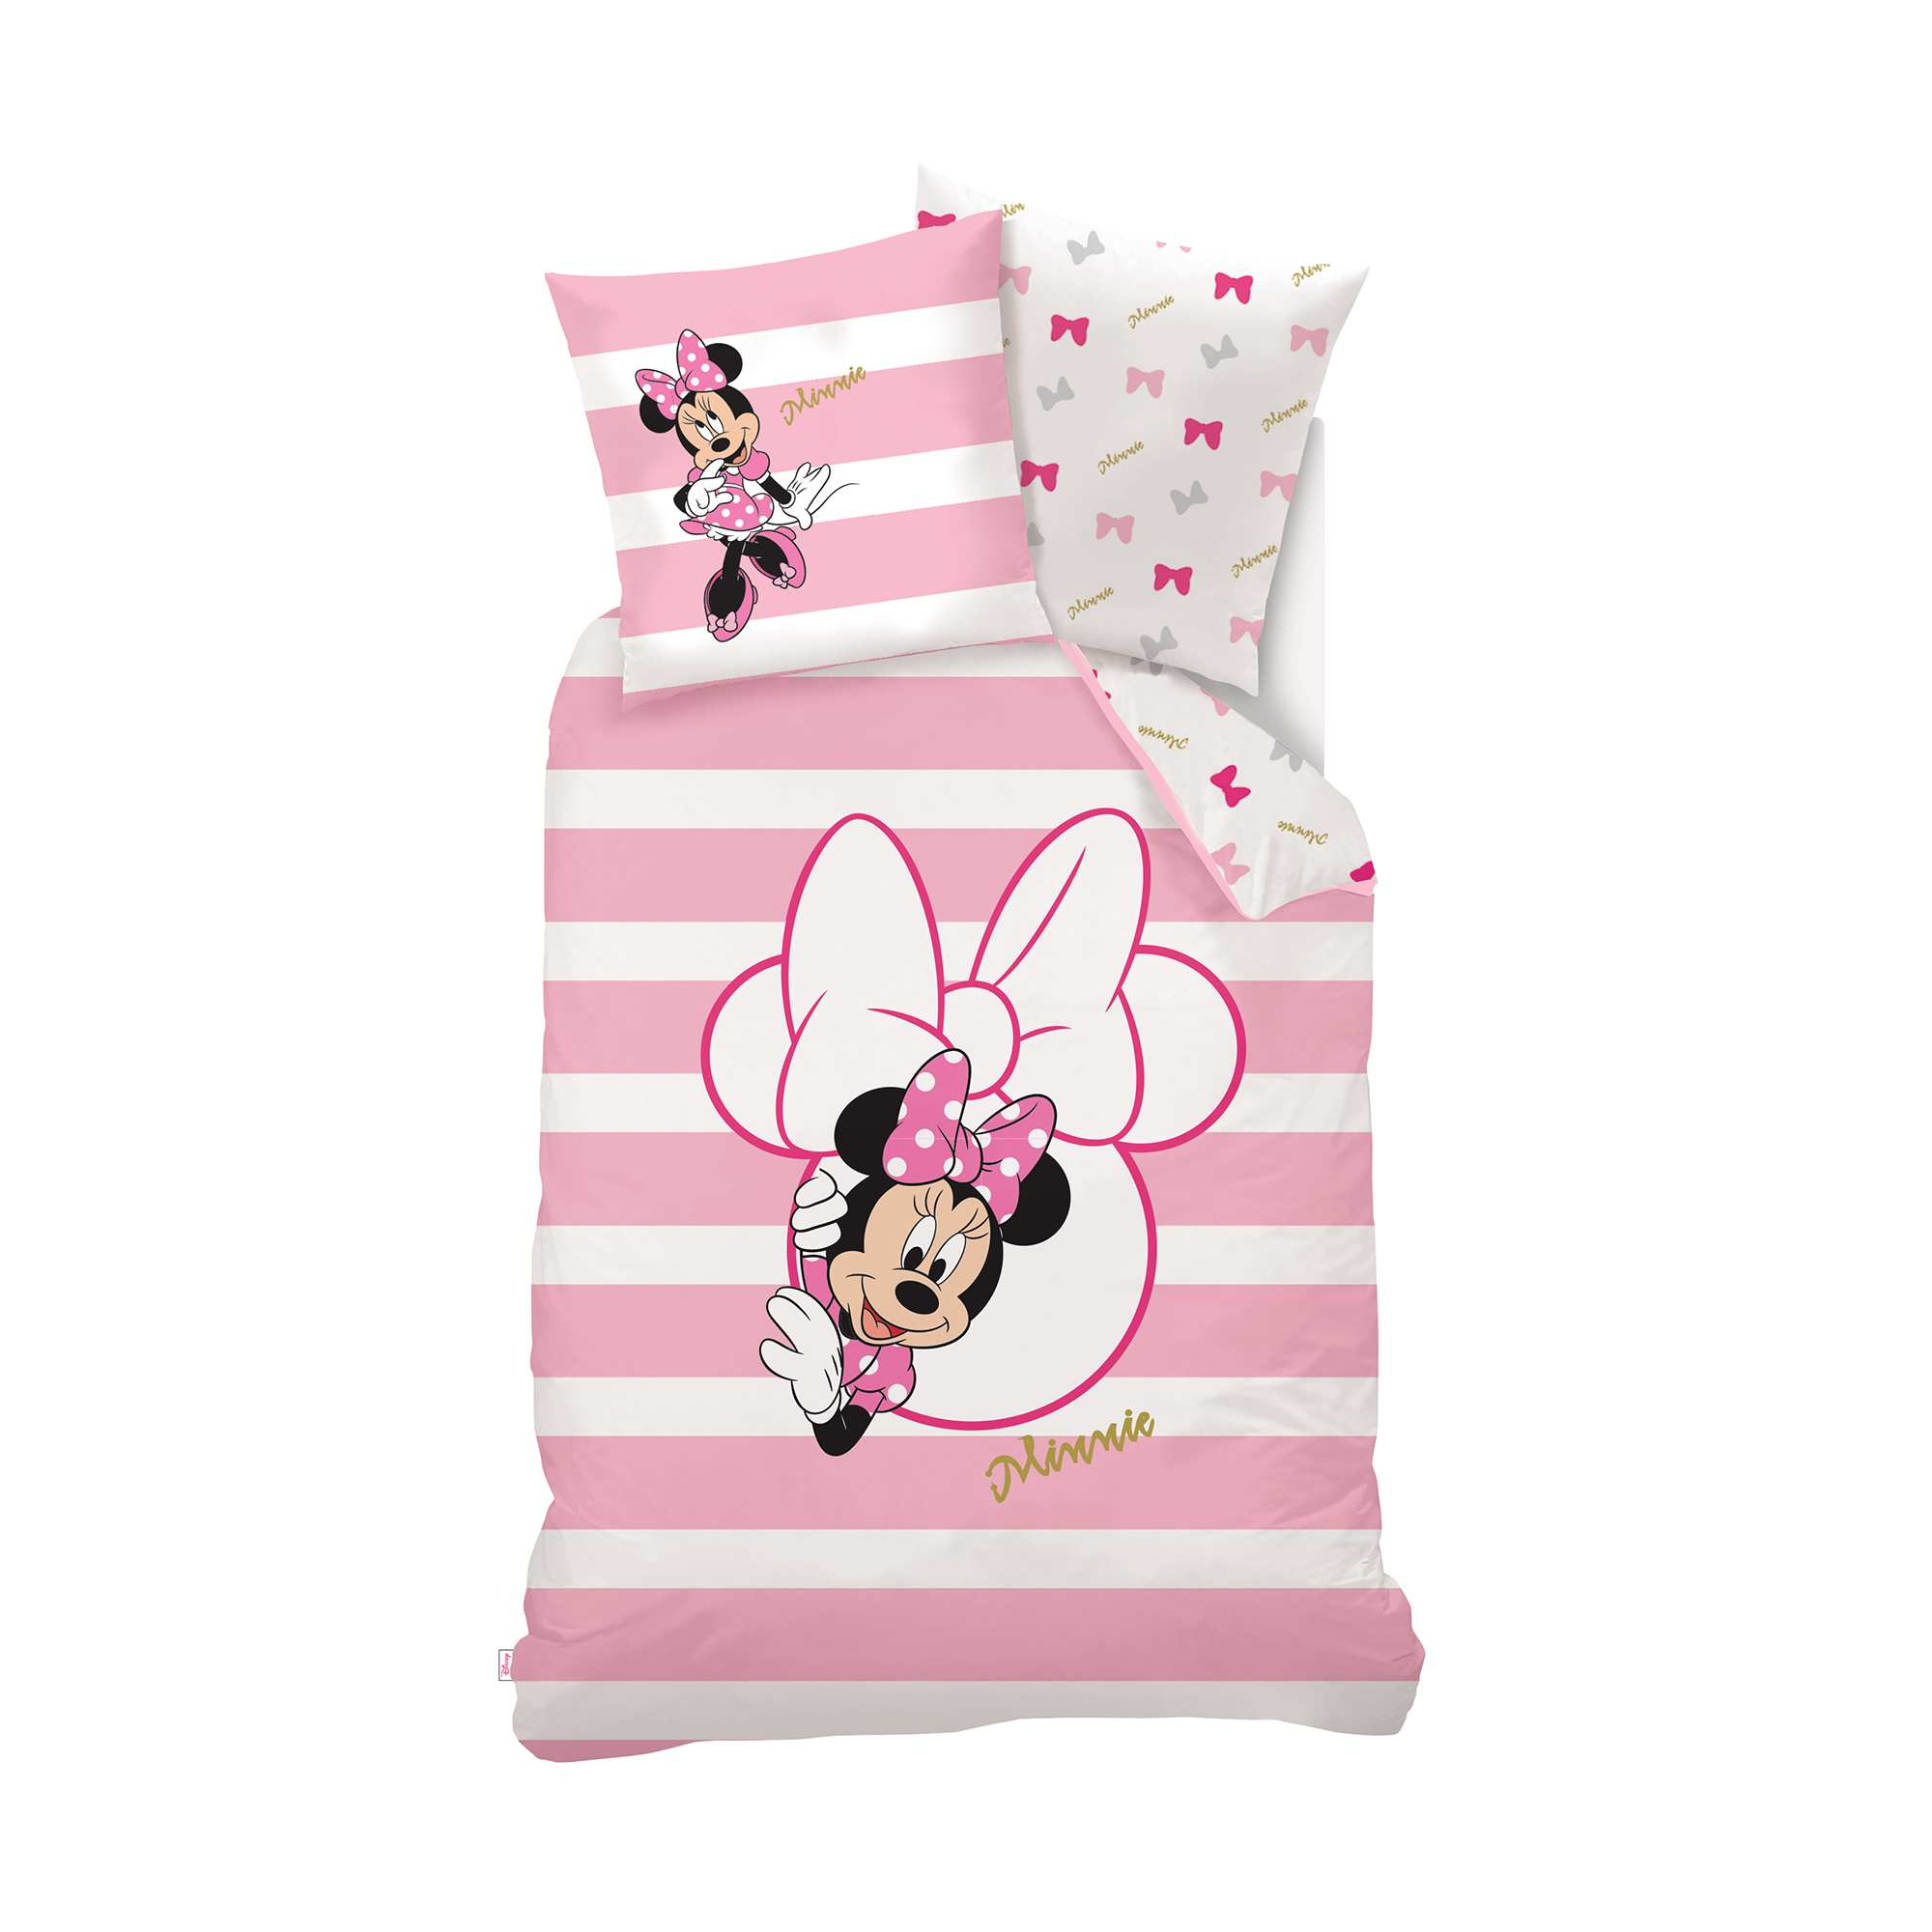 parure de lit 1 personne 39 minnie mouse 39 39 disney 39 linge de. Black Bedroom Furniture Sets. Home Design Ideas